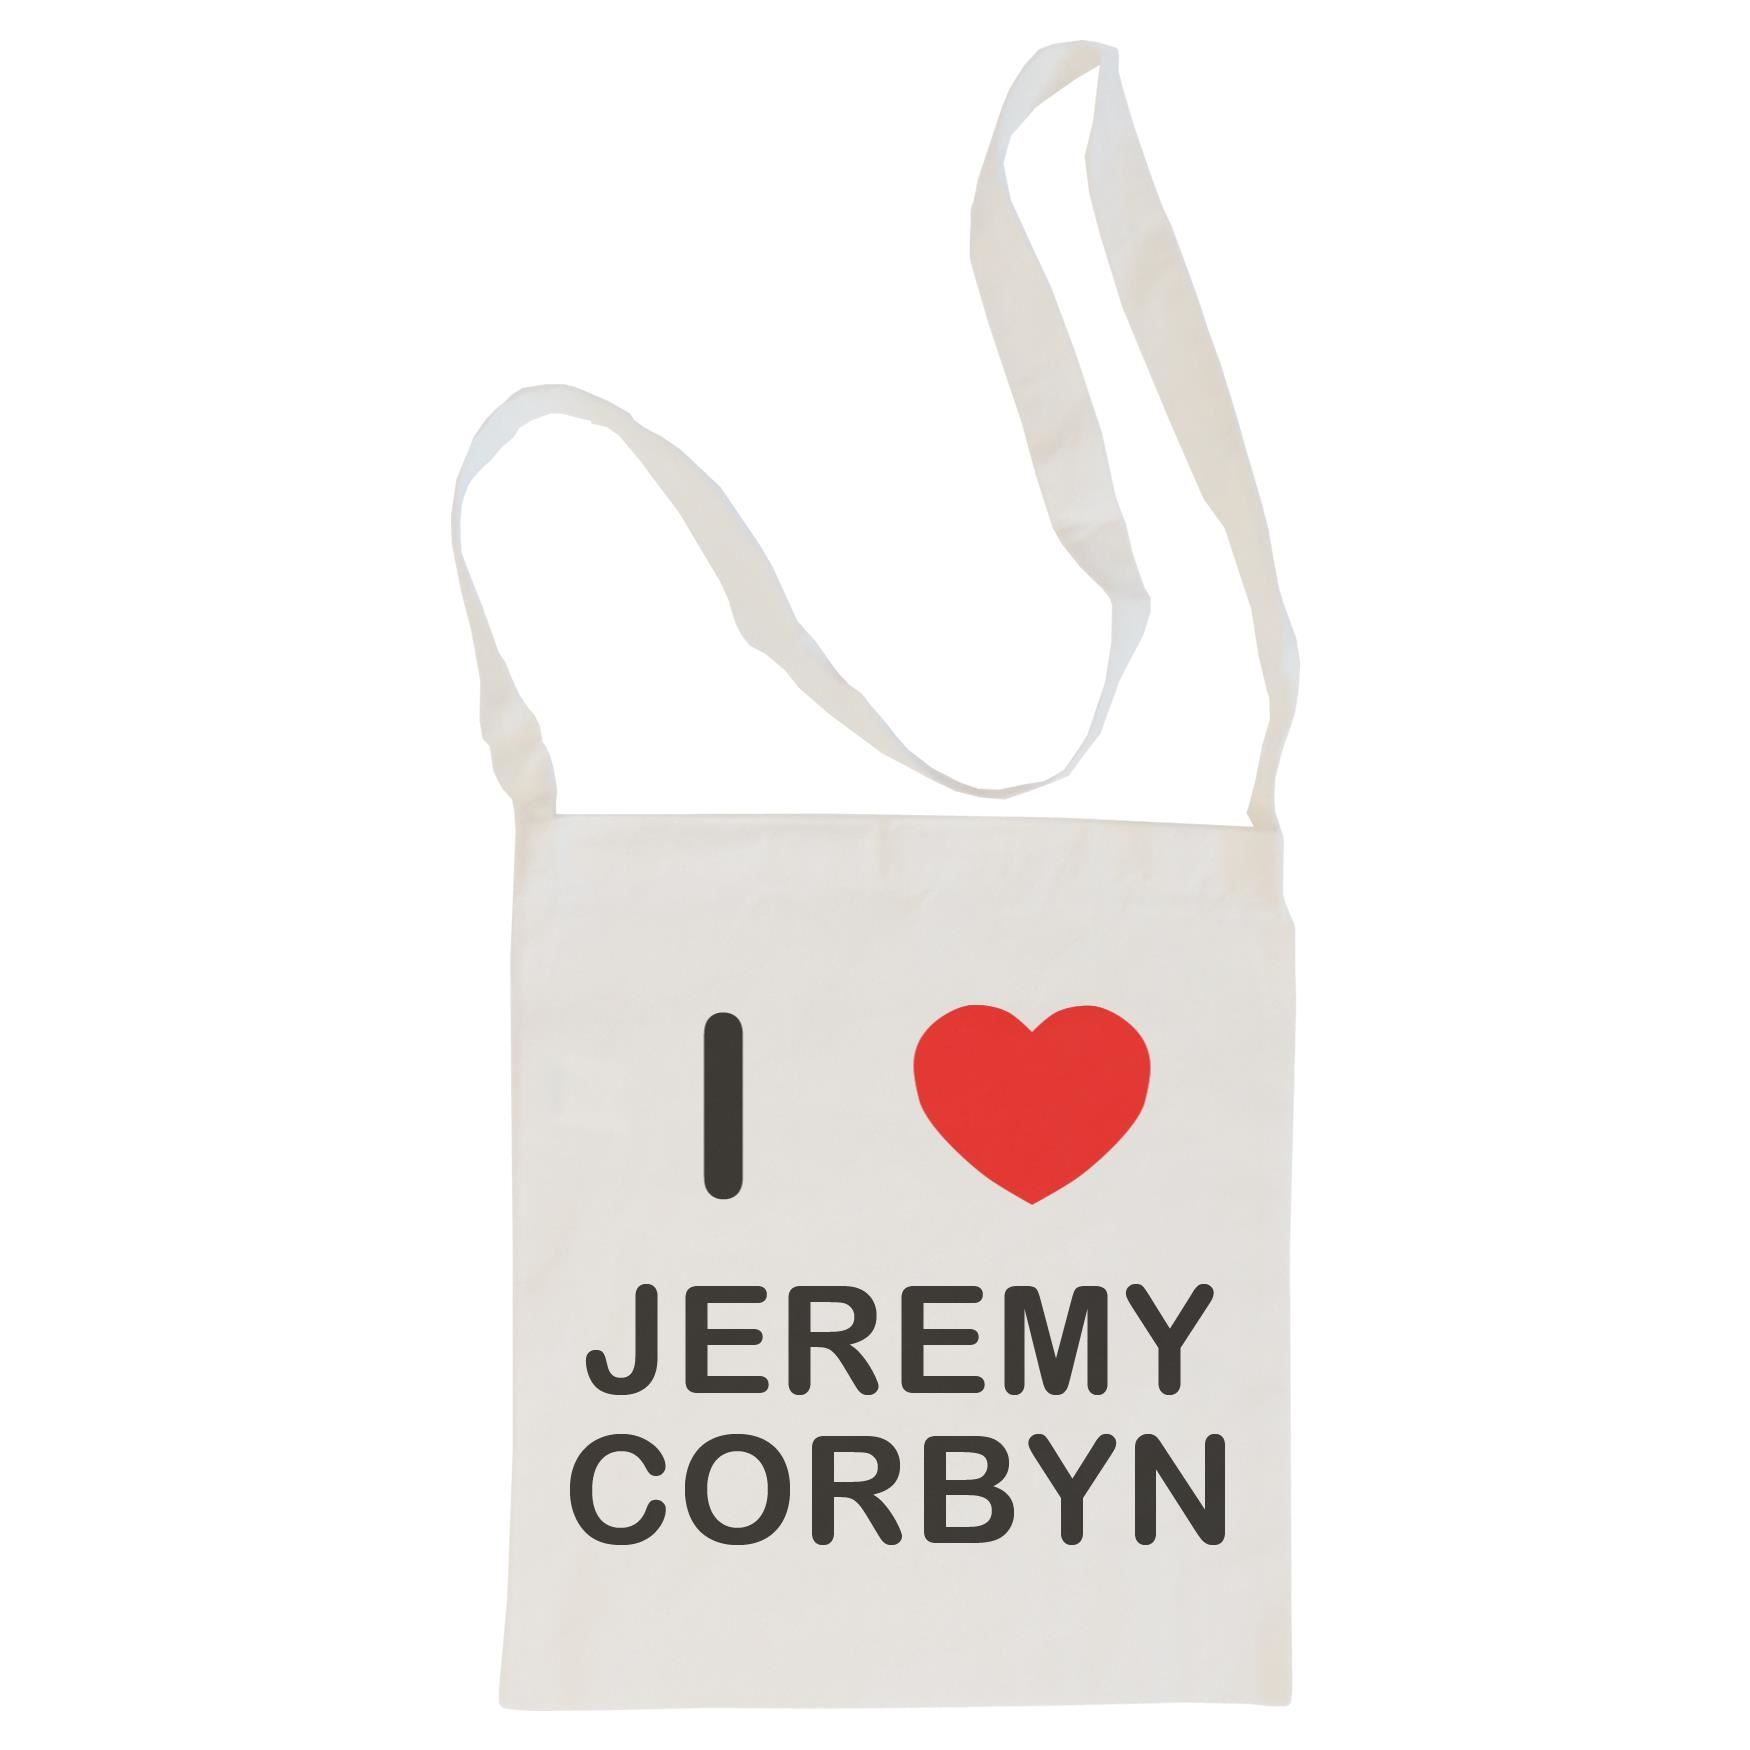 I Love Jeremy Corbyn - Cotton Bag | Size choice Tote, Shopper or Sling